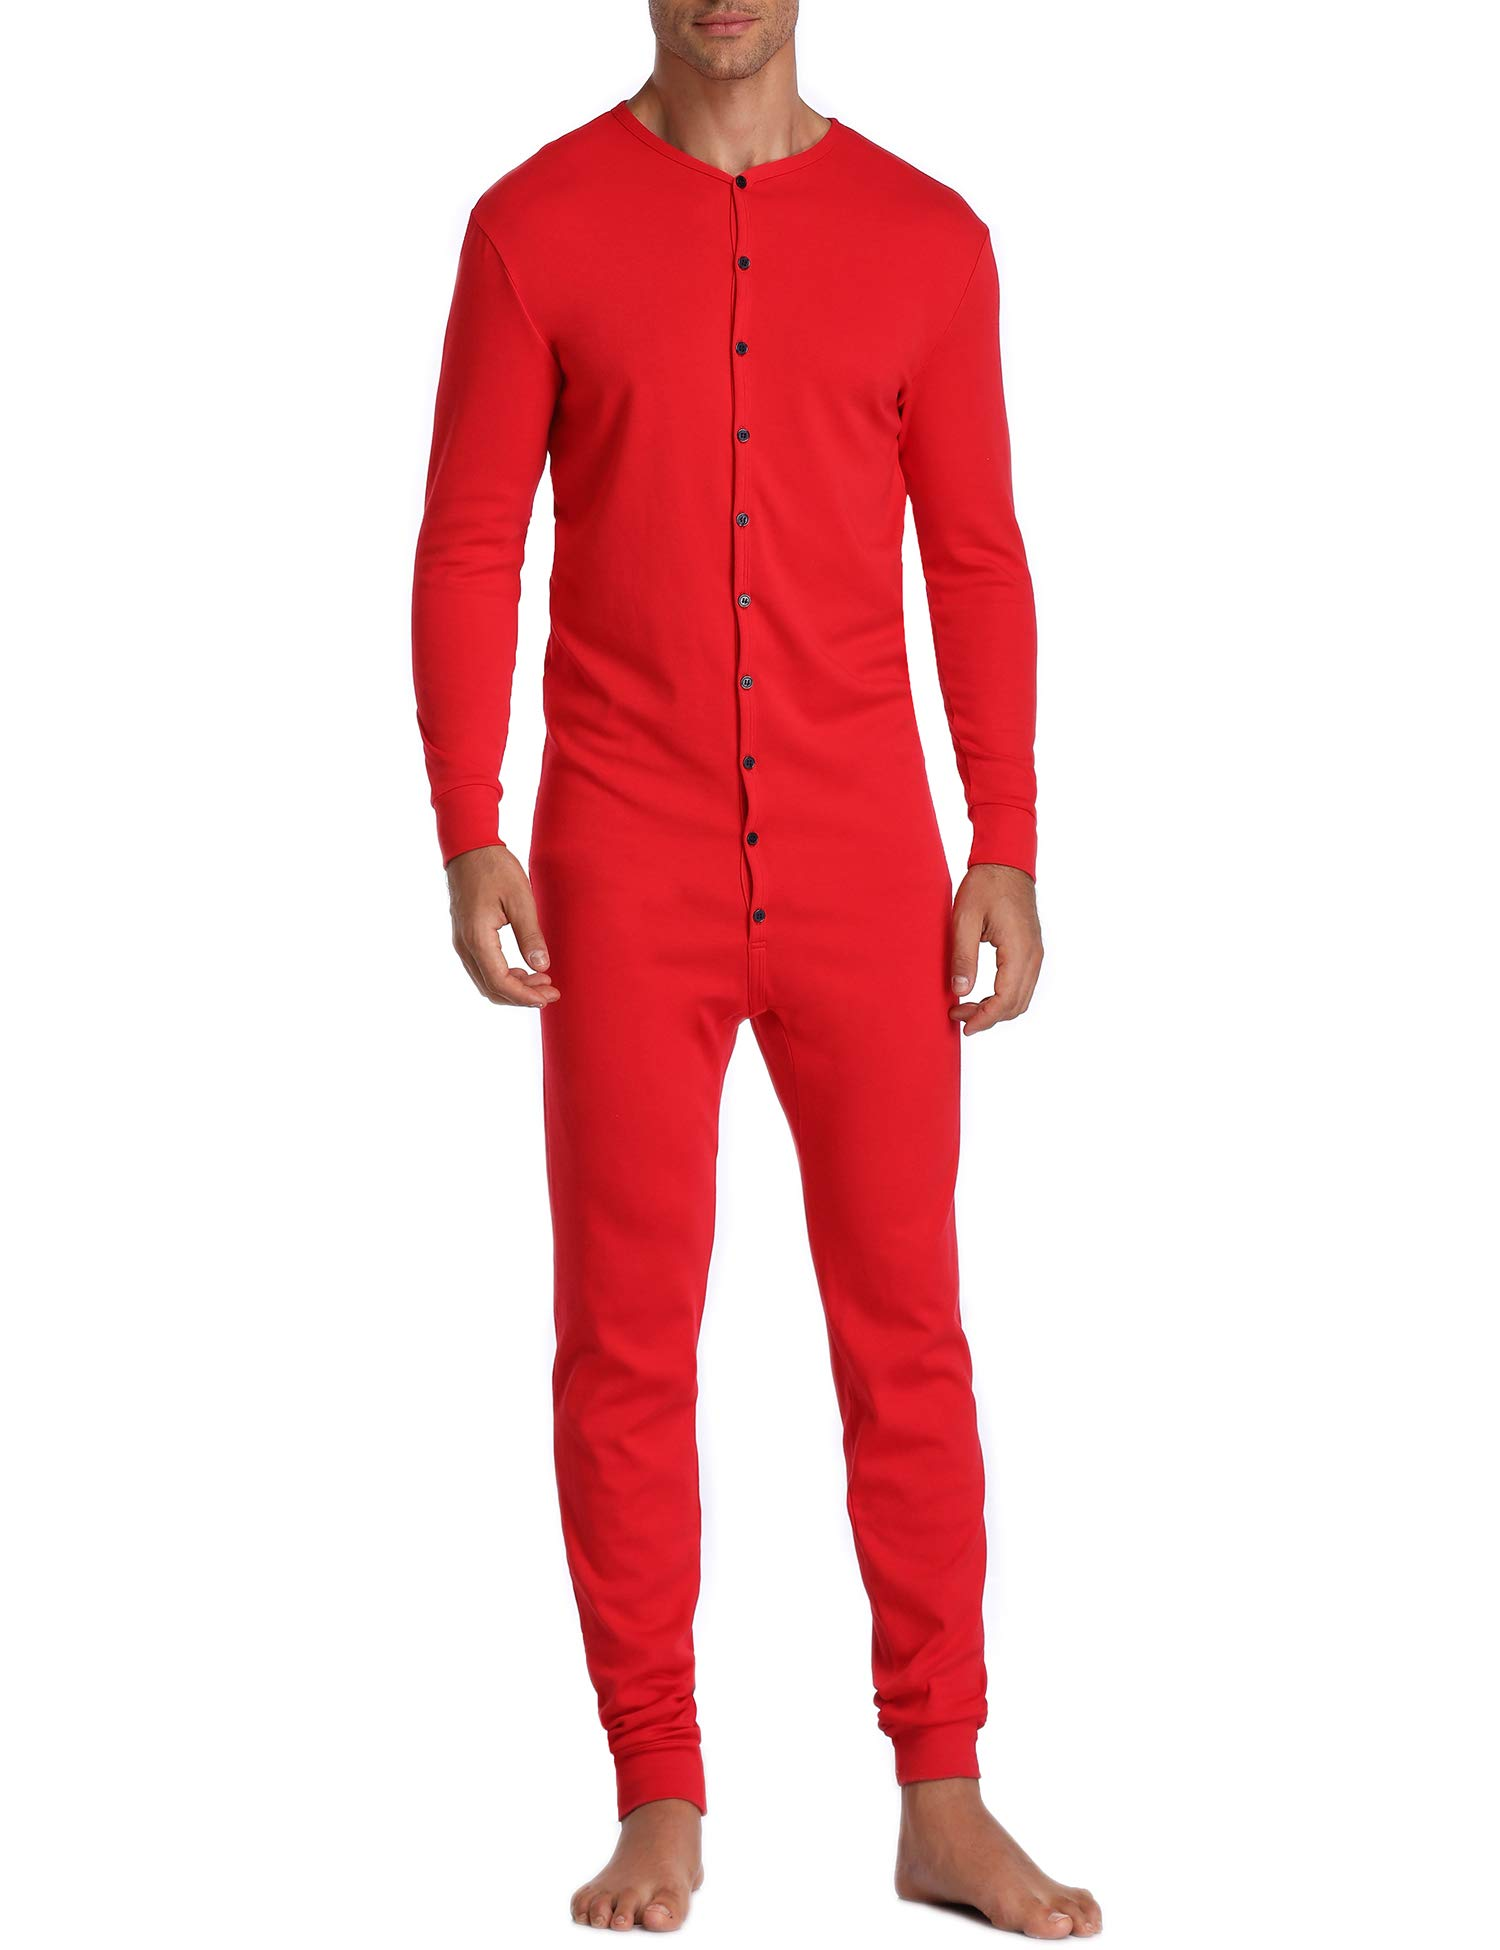 Lusofie Mens Thermal Underwear Union Suit Base Layer Henley Adult Onesie (Red, S) by Lusofie